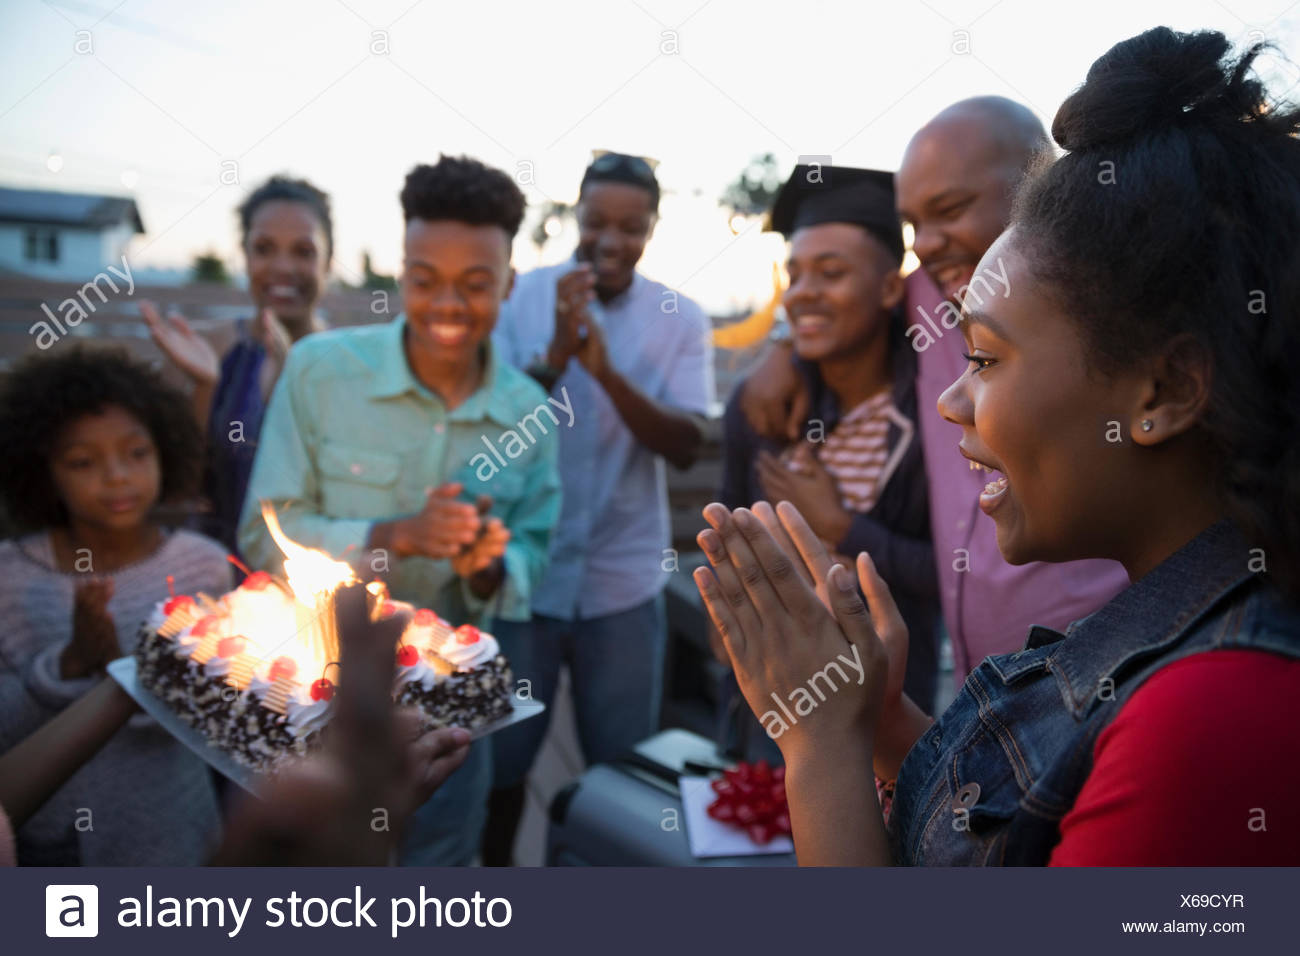 African American family celebrating graduation with cake - Stock Image